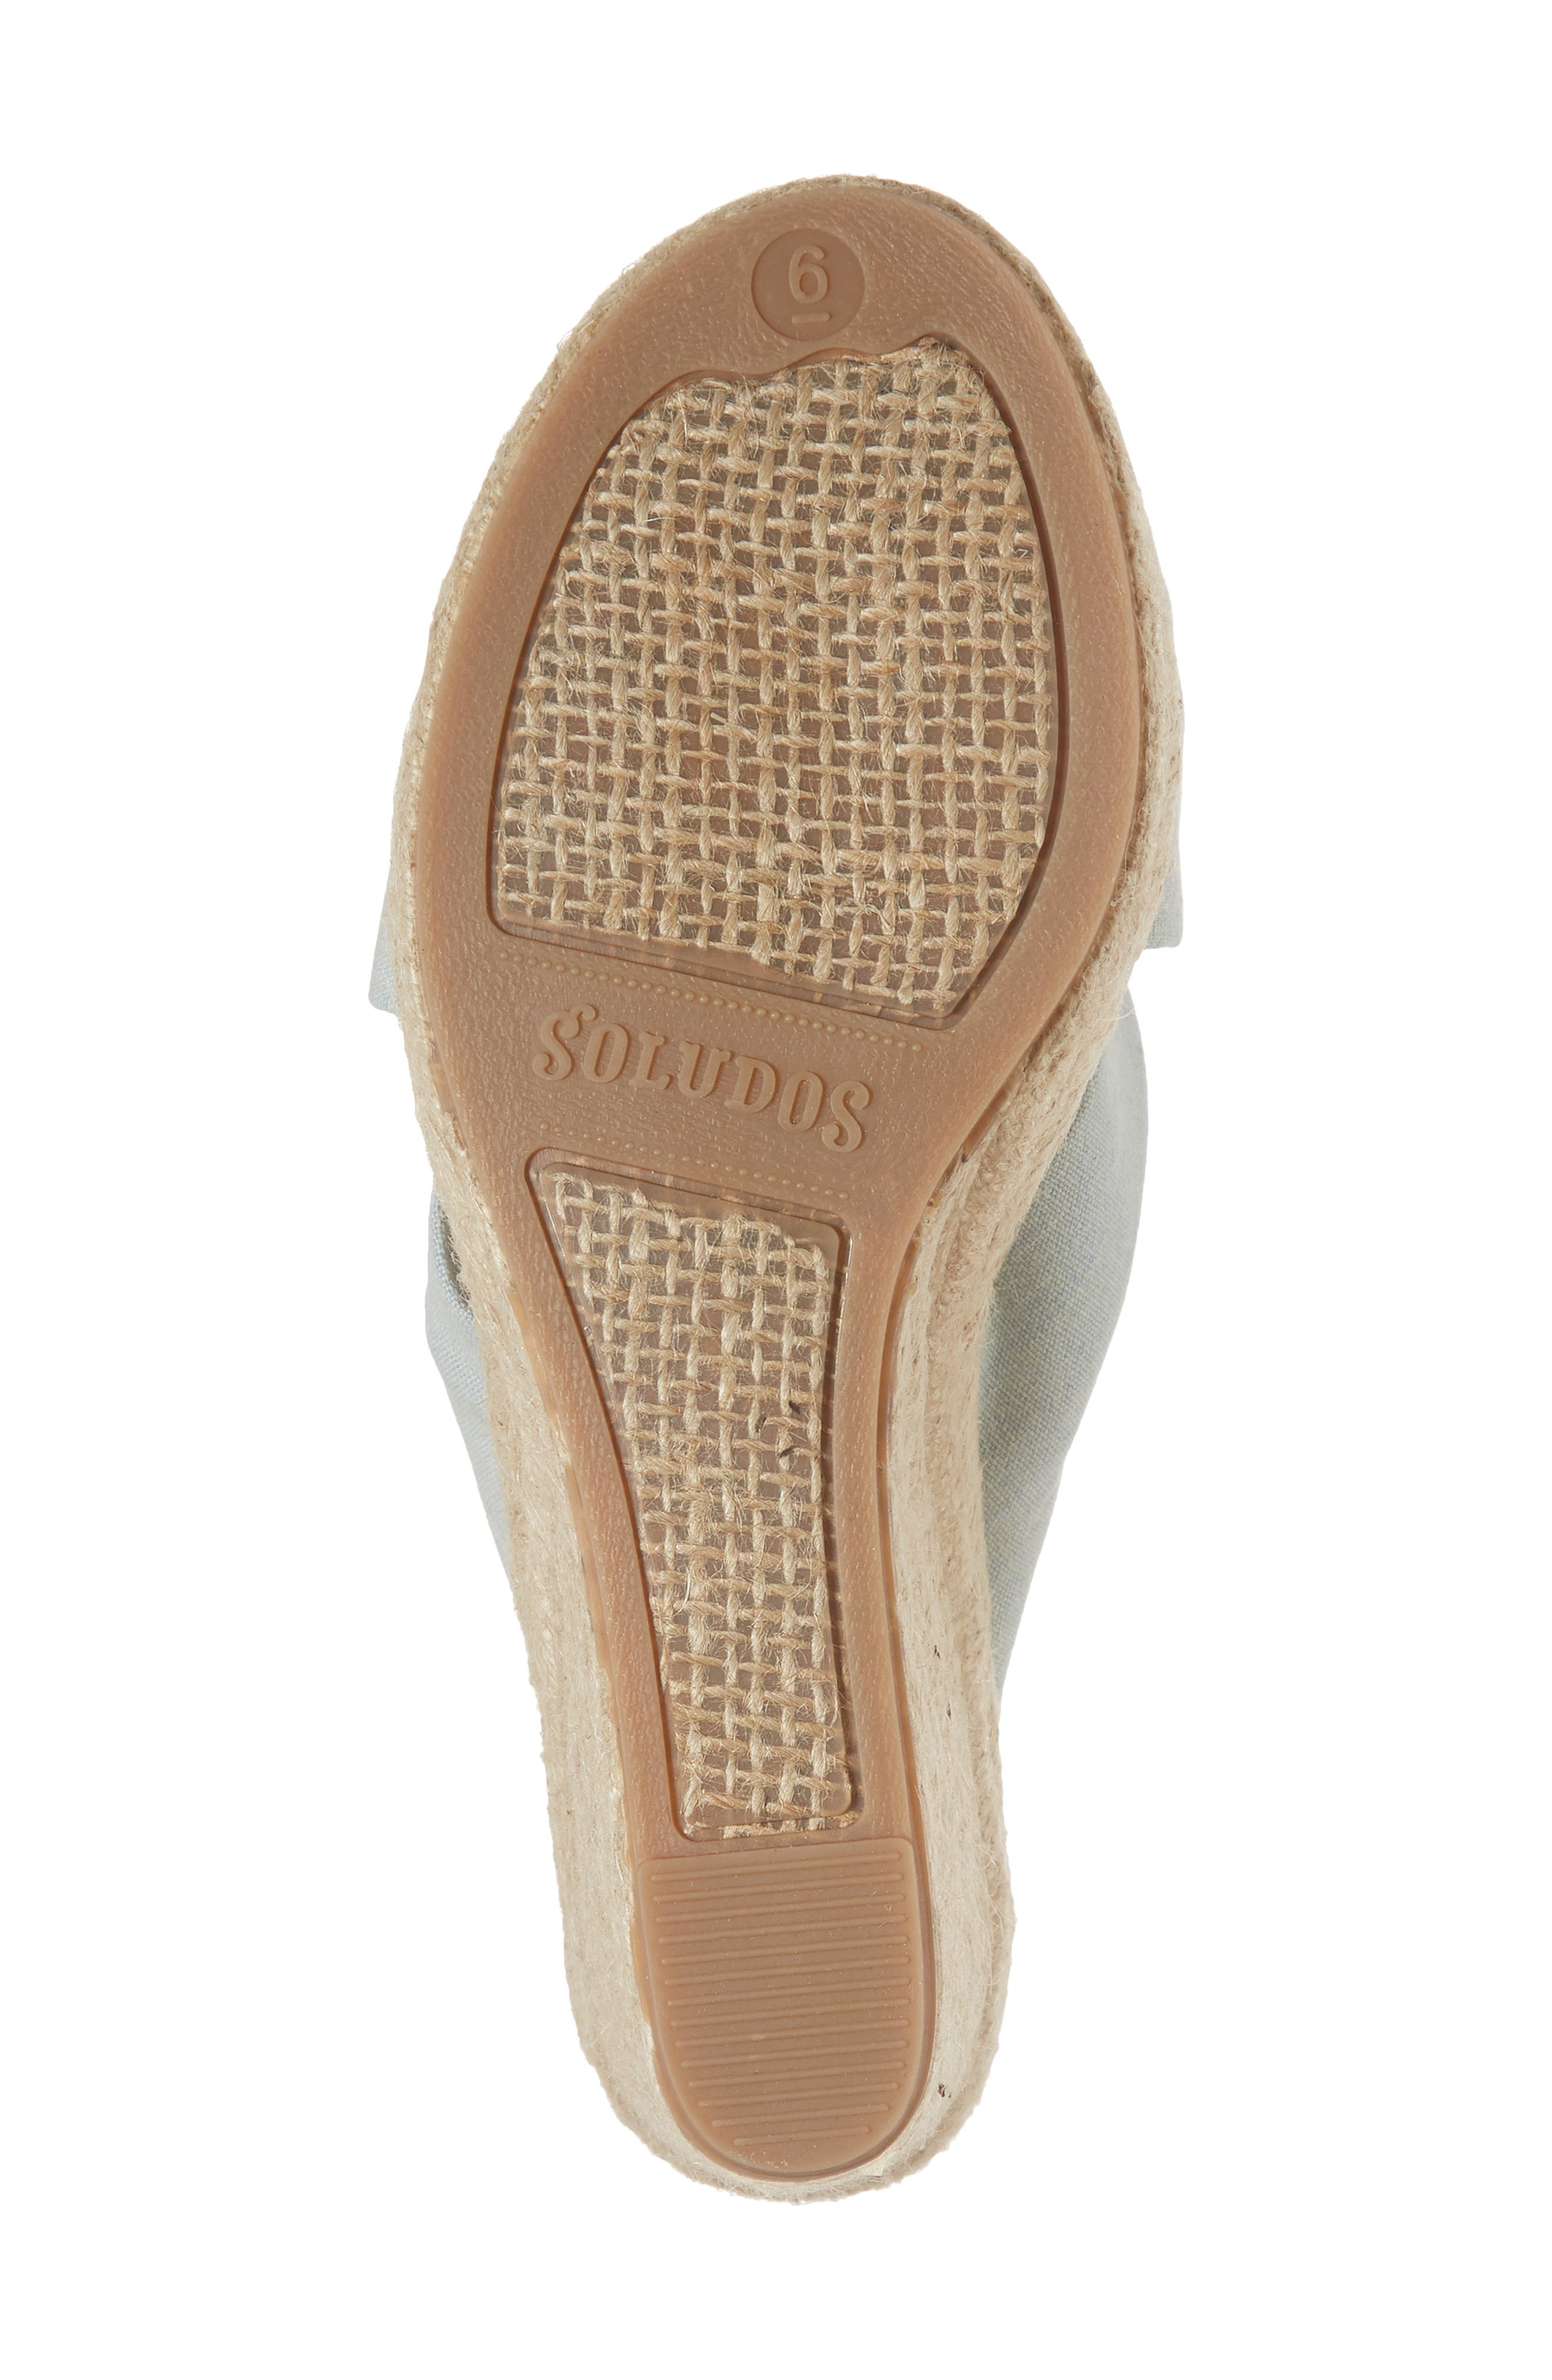 Knotted Espadrille Wedge Sandal,                             Alternate thumbnail 6, color,                             420